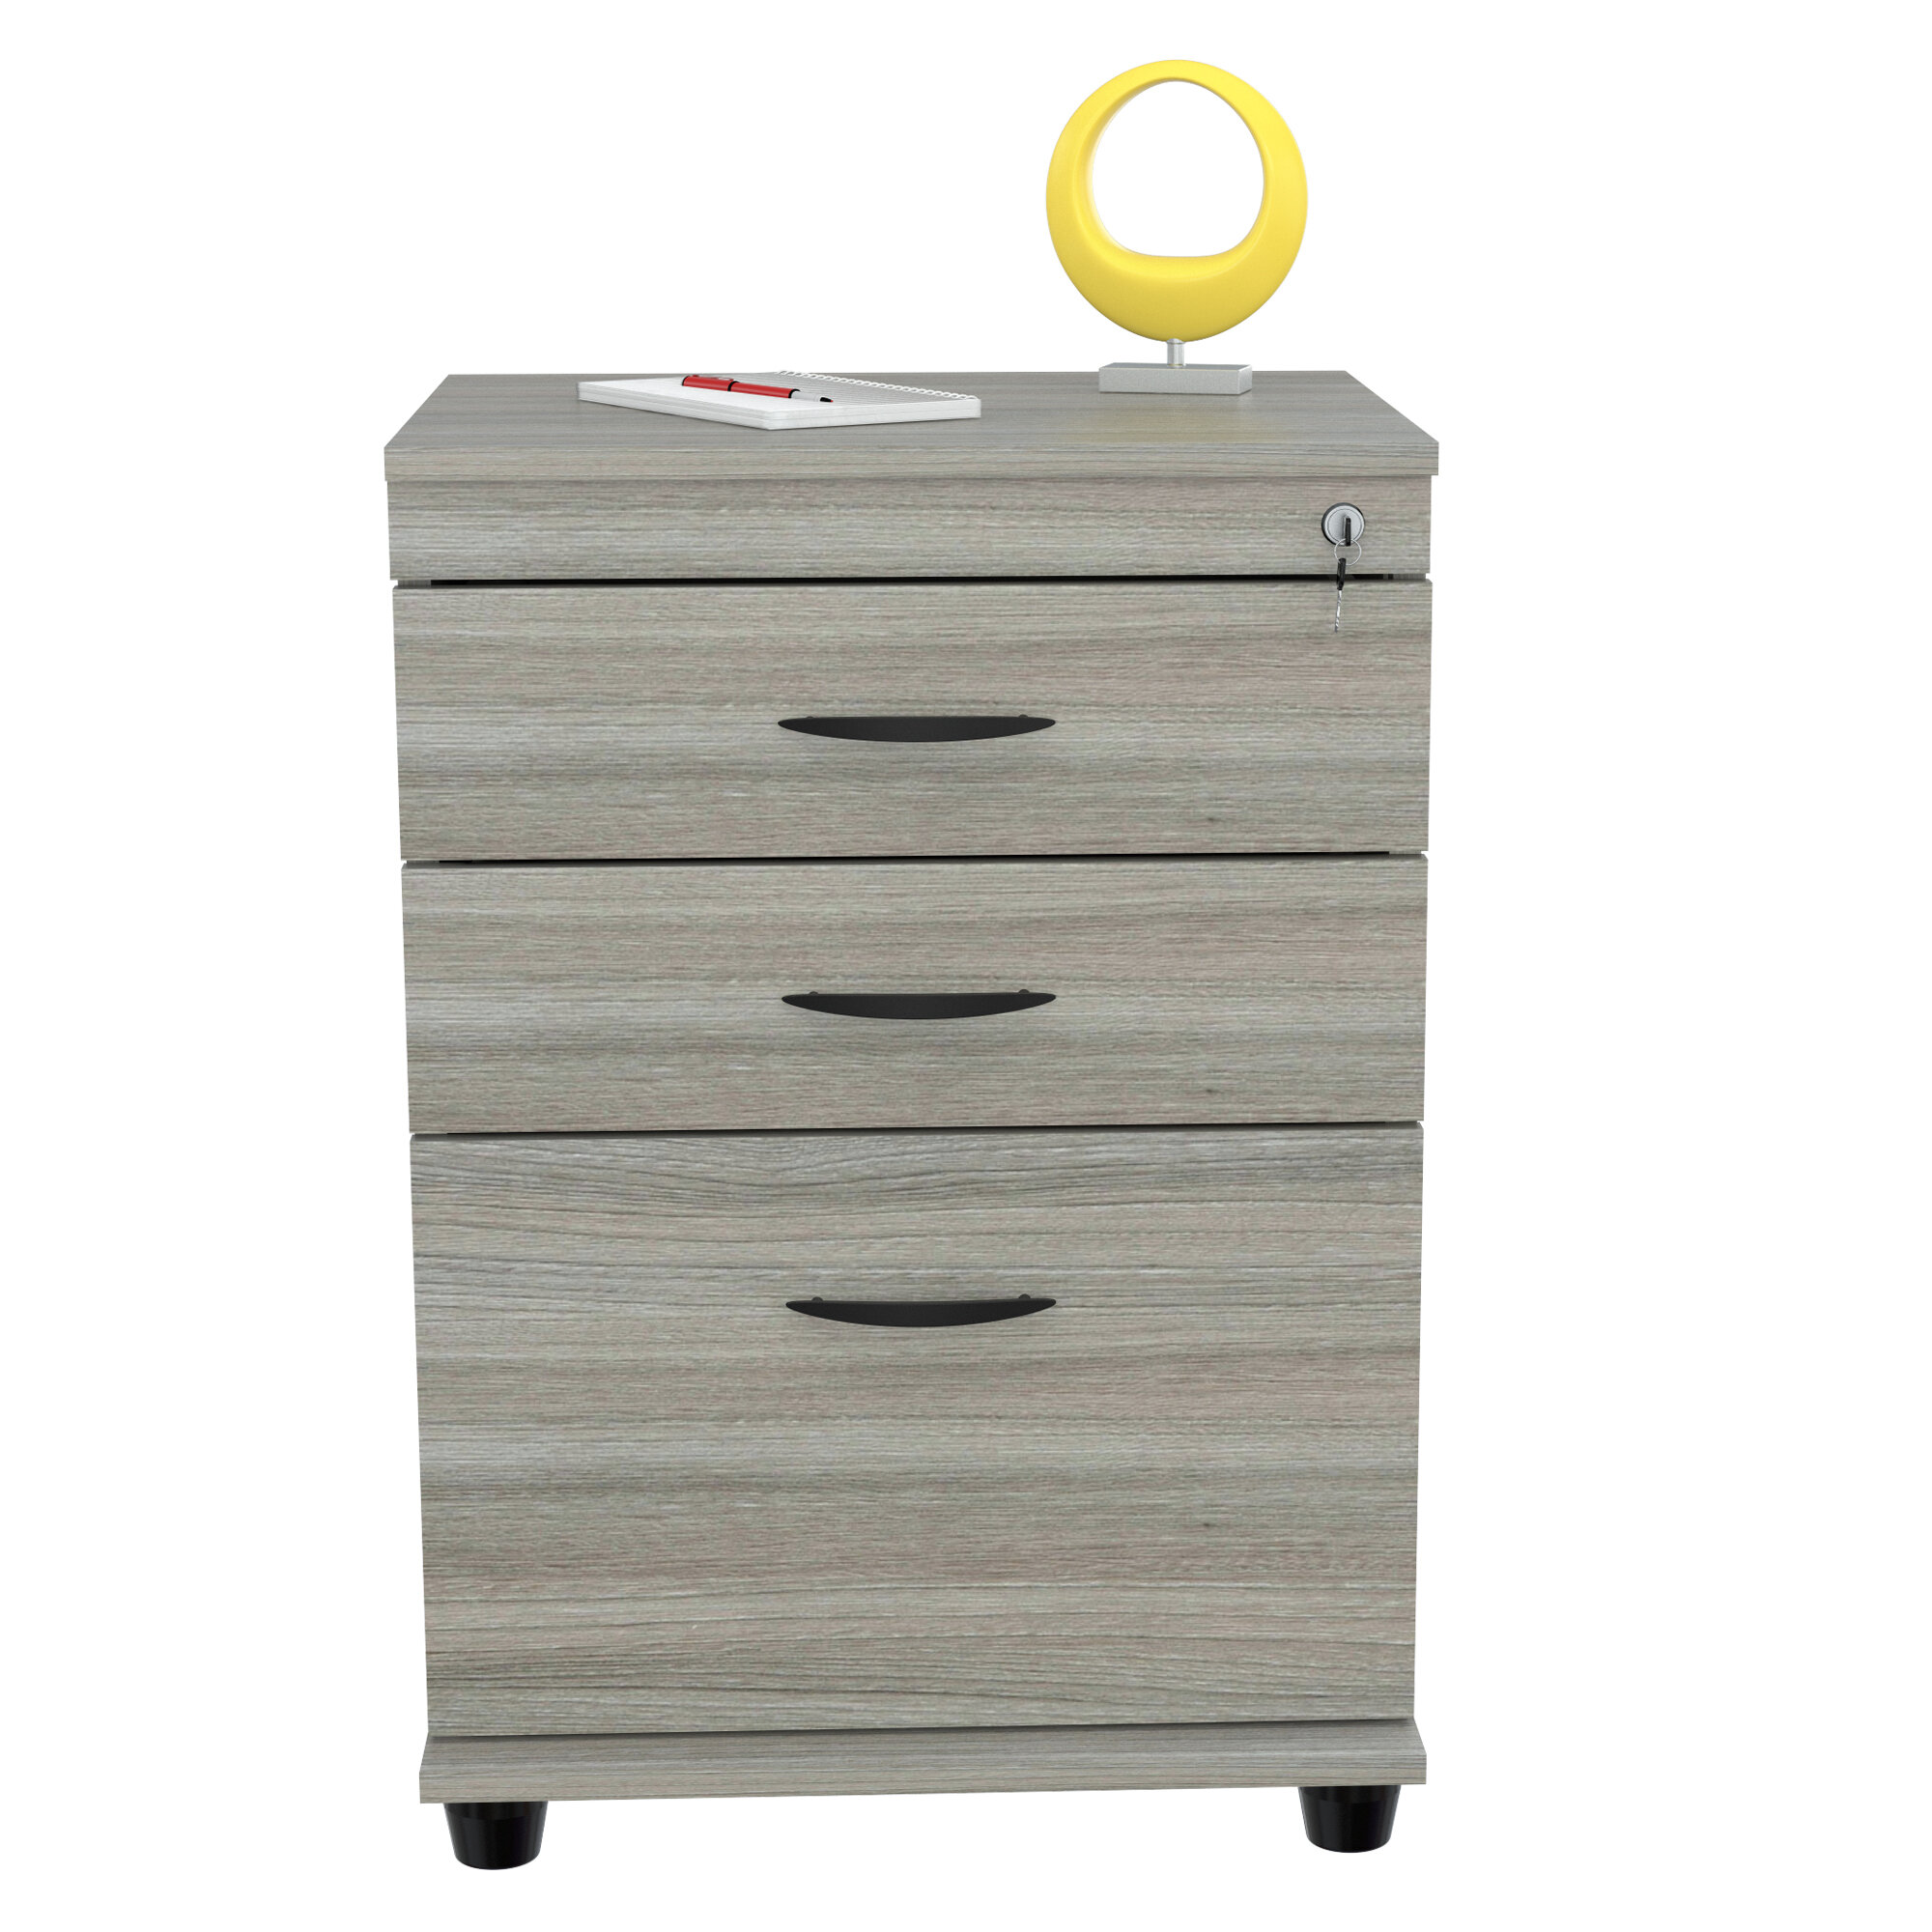 cabinet wonderful letter documents drawer filing file locking steel finish scures light storage size vertical enchanting draw cabinets construction gray